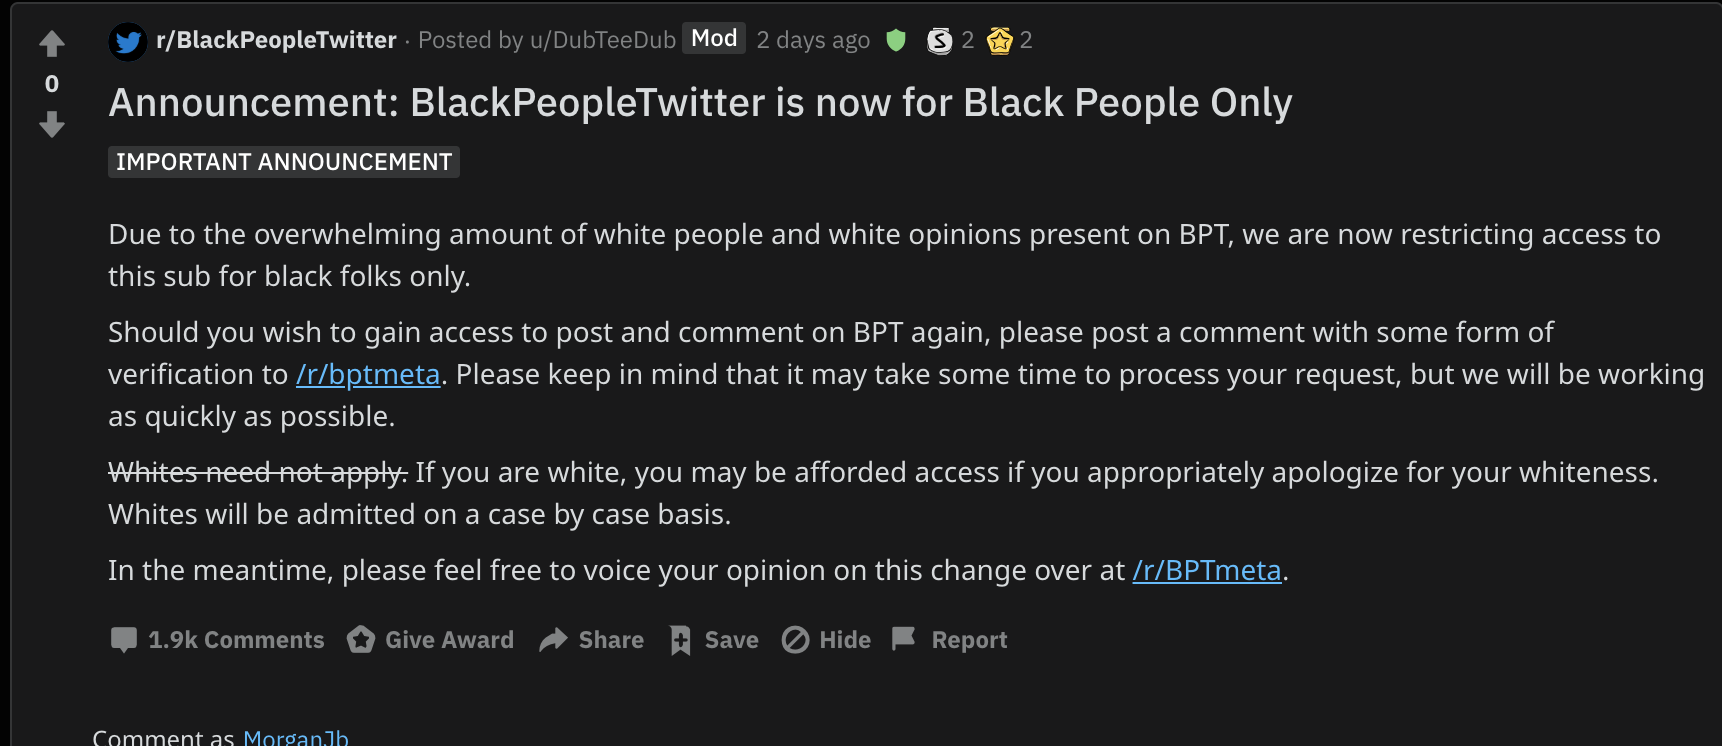 BlackPeopleTwitter on Reddit now banning white users  , page 1